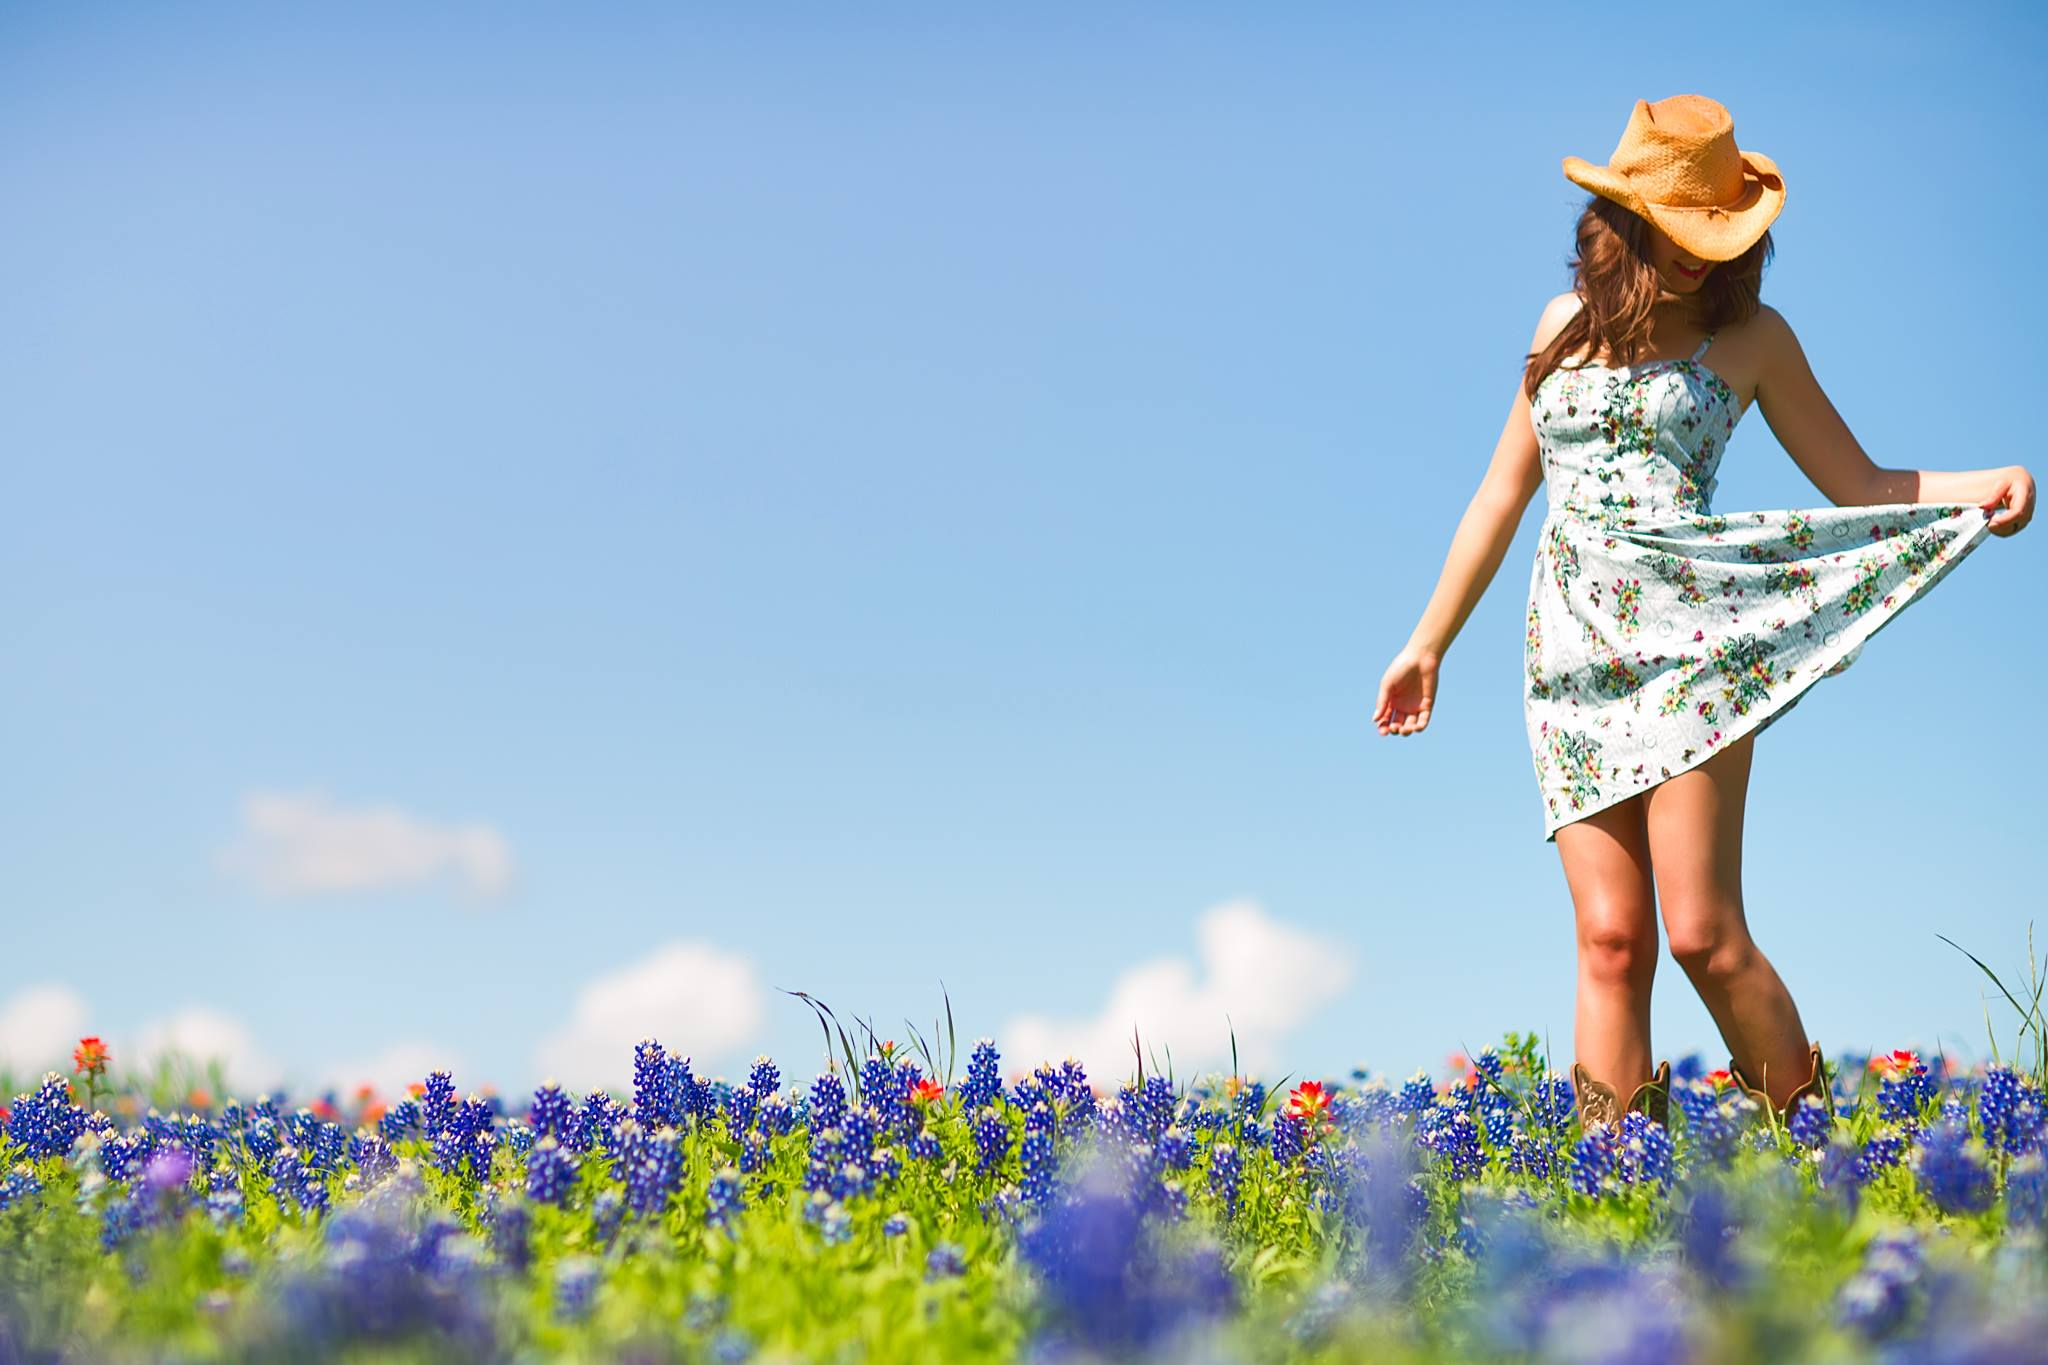 Reema Yeager Modeling Bluebonnets